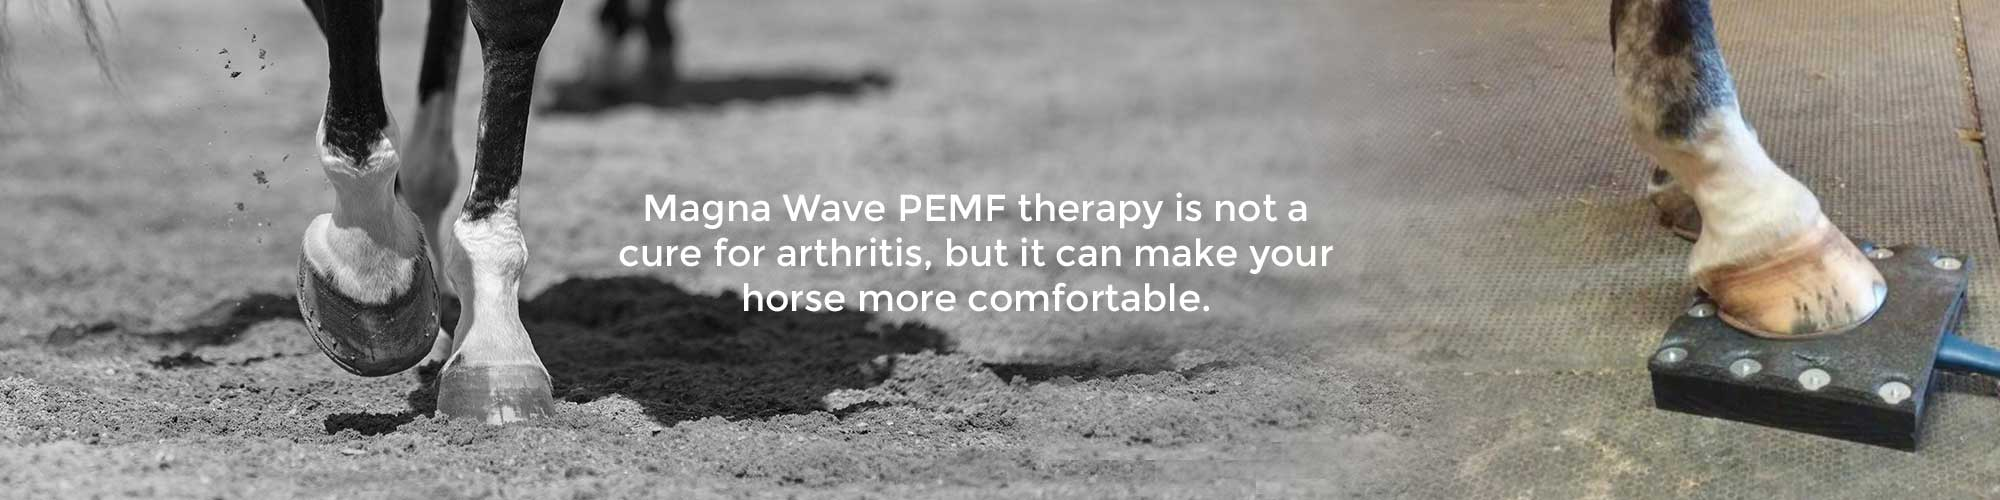 Magna Wave PEMF therapy is not a cure for arthritis, but it can make your horse more comfortable.